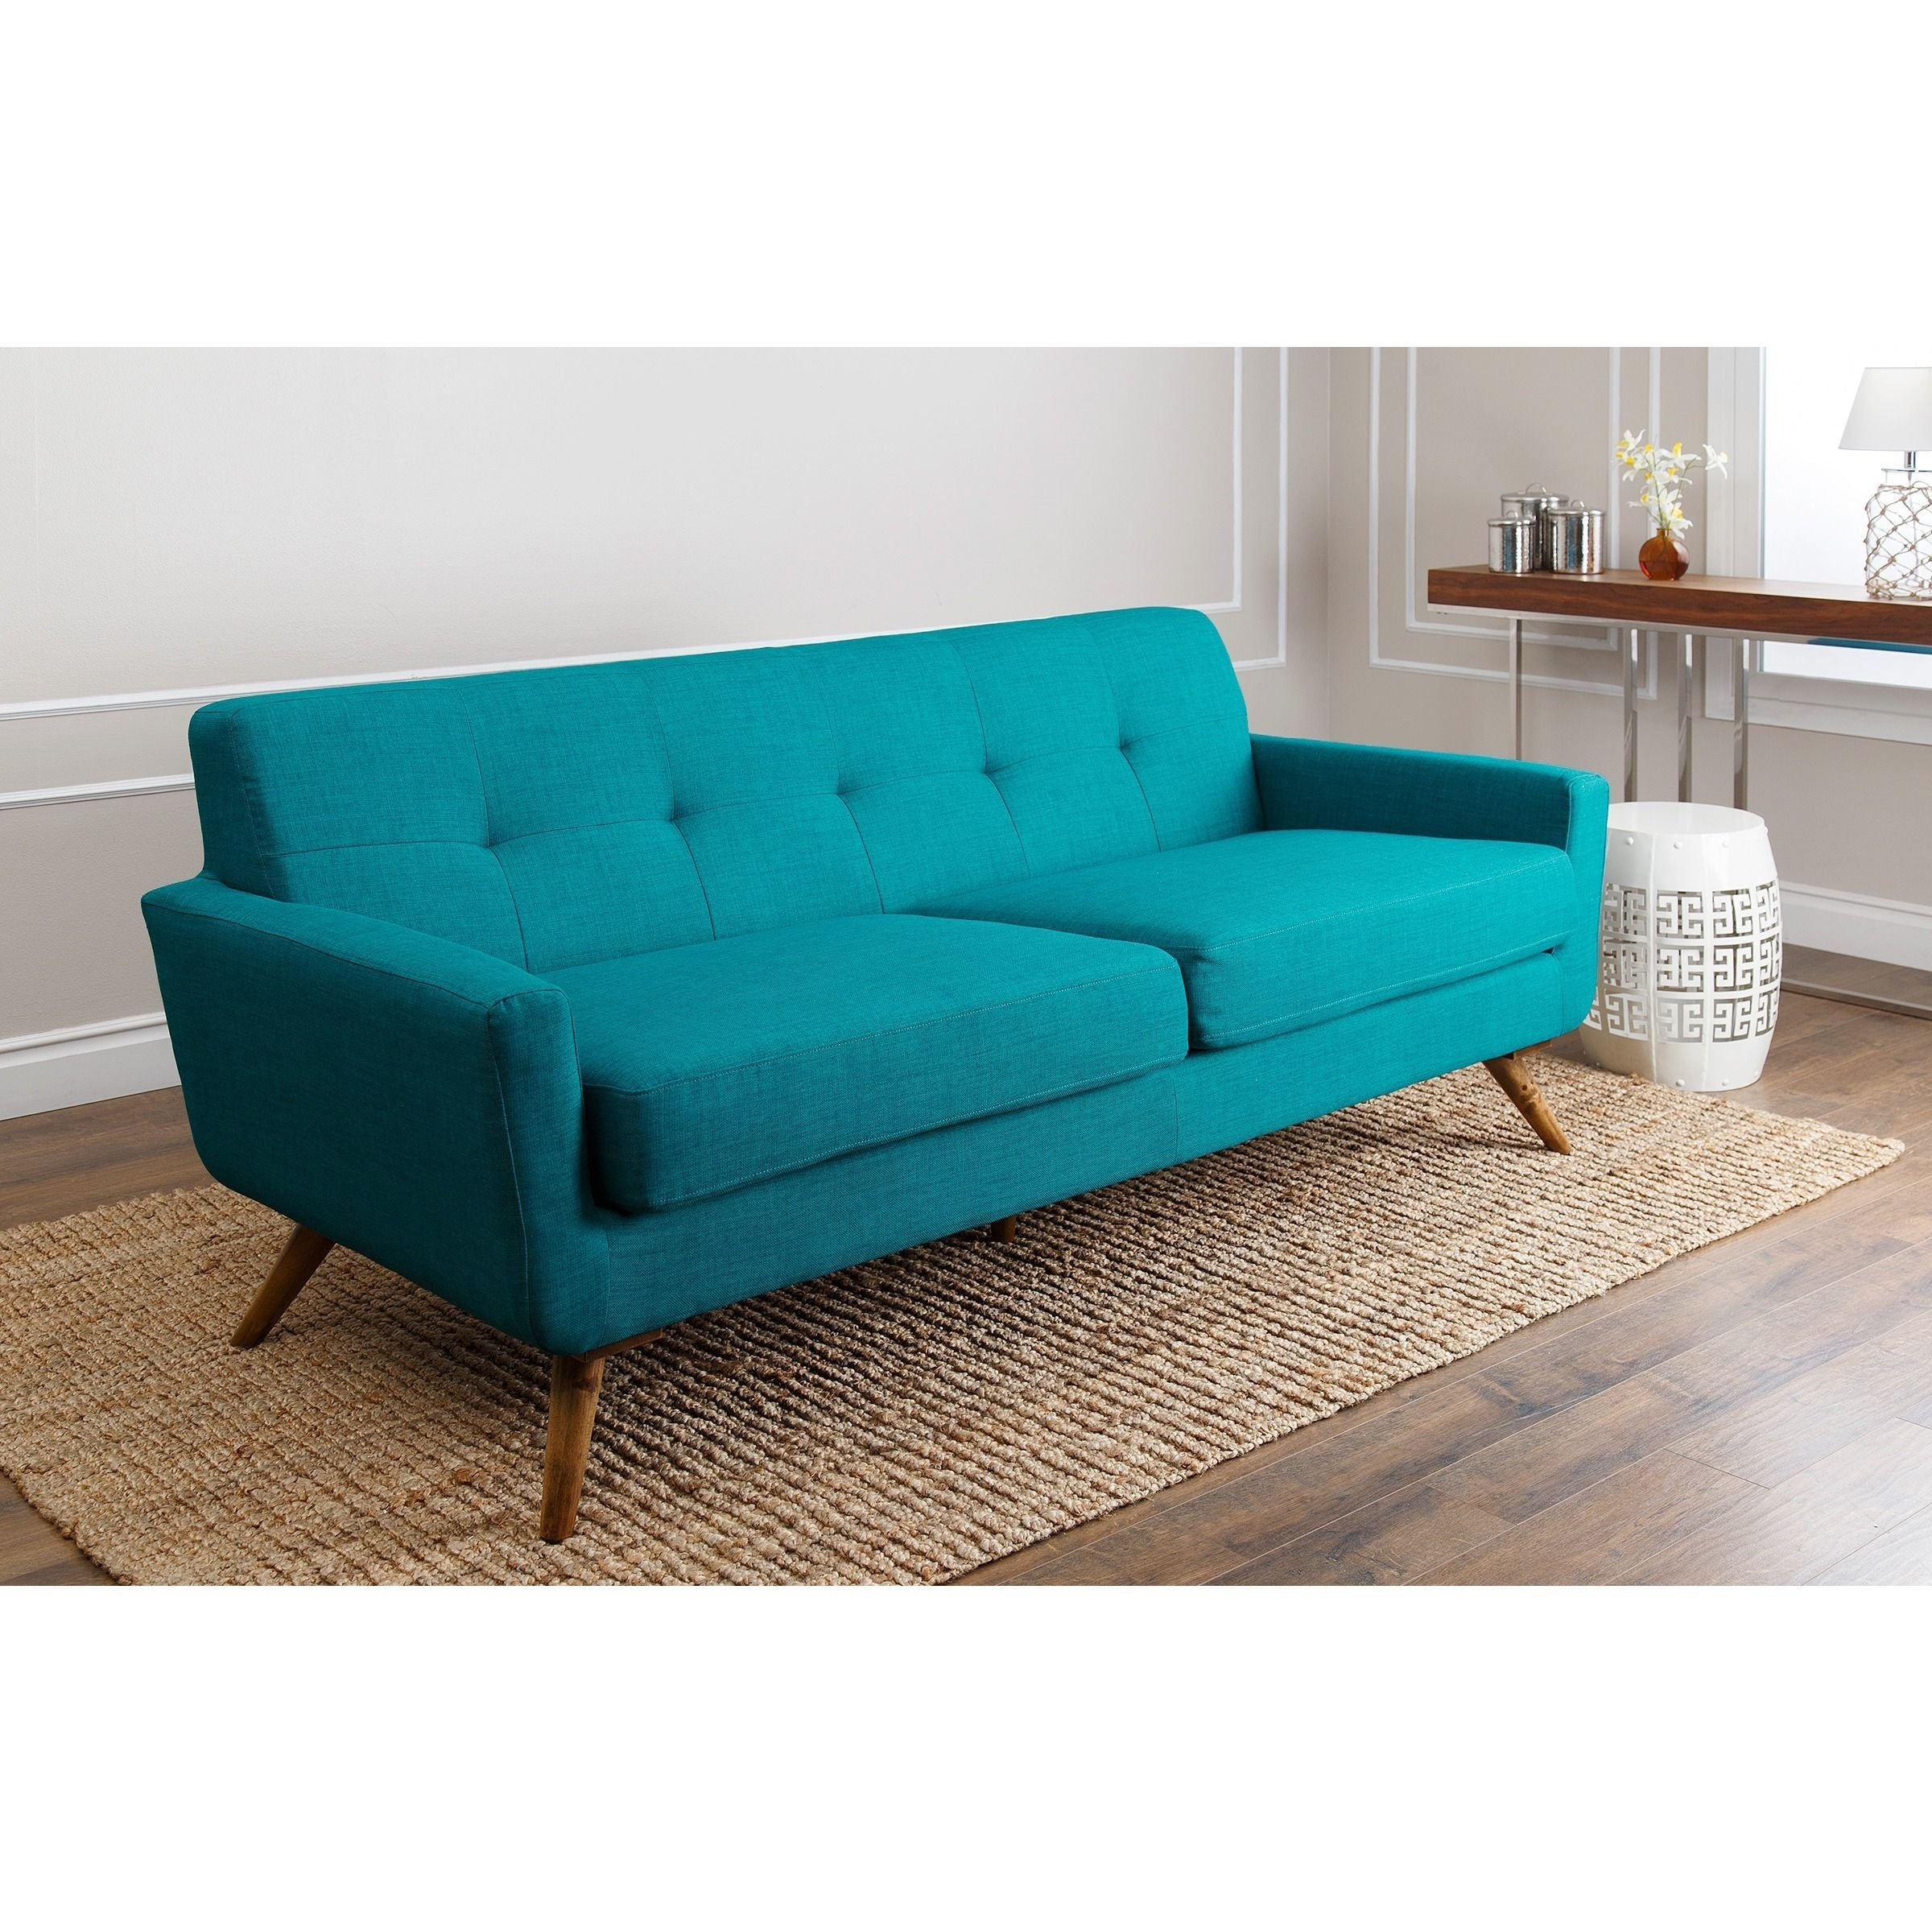 Abbyson Living Bradley Petrol Blue Fabric Sofa Ping The Best Deals On Sofas Loveseats